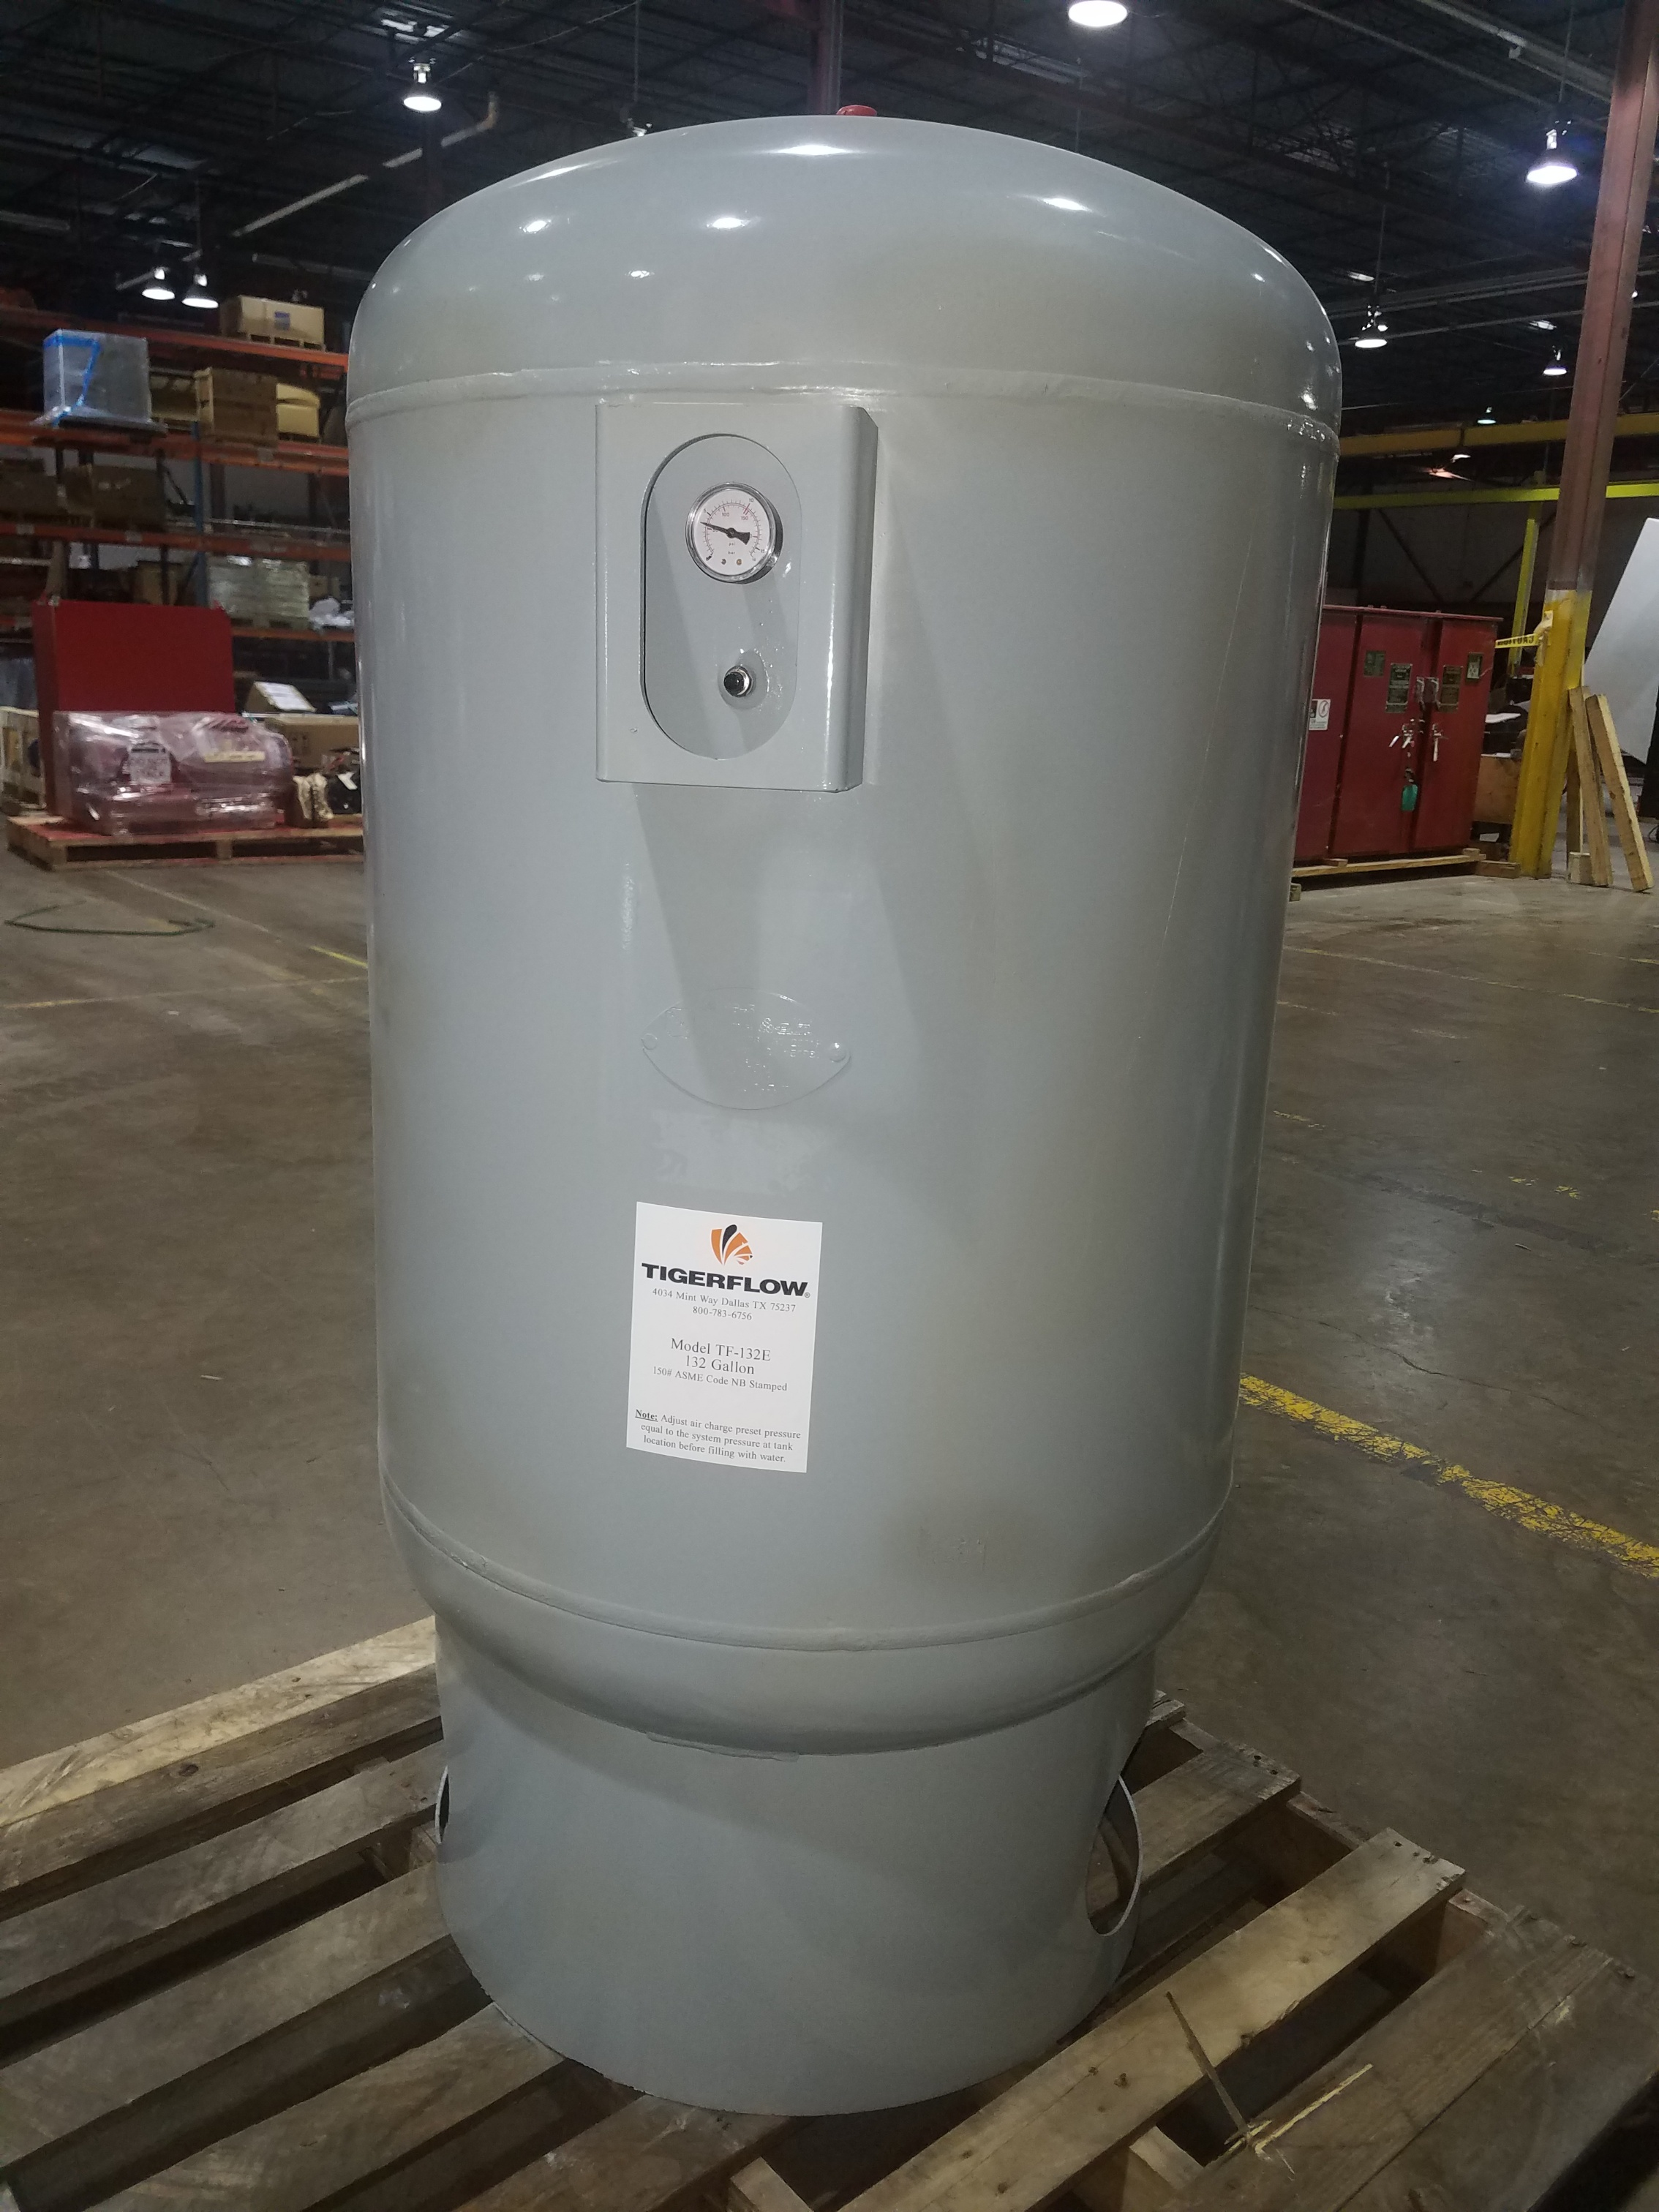 Hydropneumatic Tanks and Their Use with Domestic Water Boosters